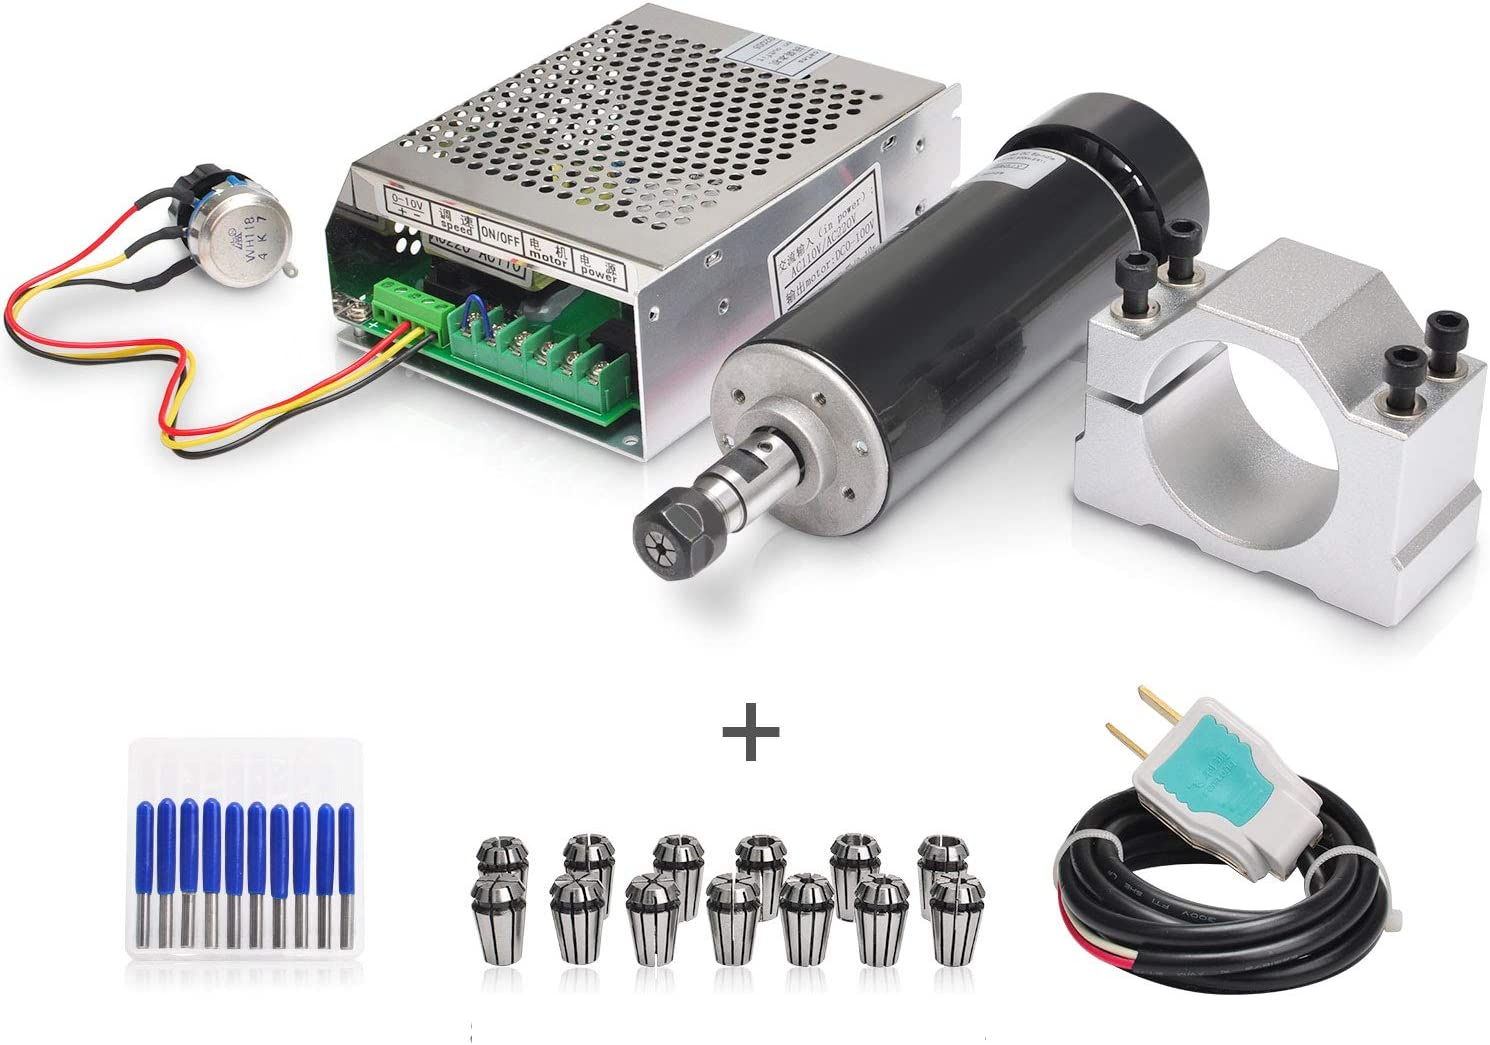 Daedalus CNC Spindle kit 500W, Air Cooled 0.5kw Milling Motor 110V Spindle Speed MACH3 Power Converter 52mm Clamp 13pcs ER11 Collet for Profession DIY Engraving